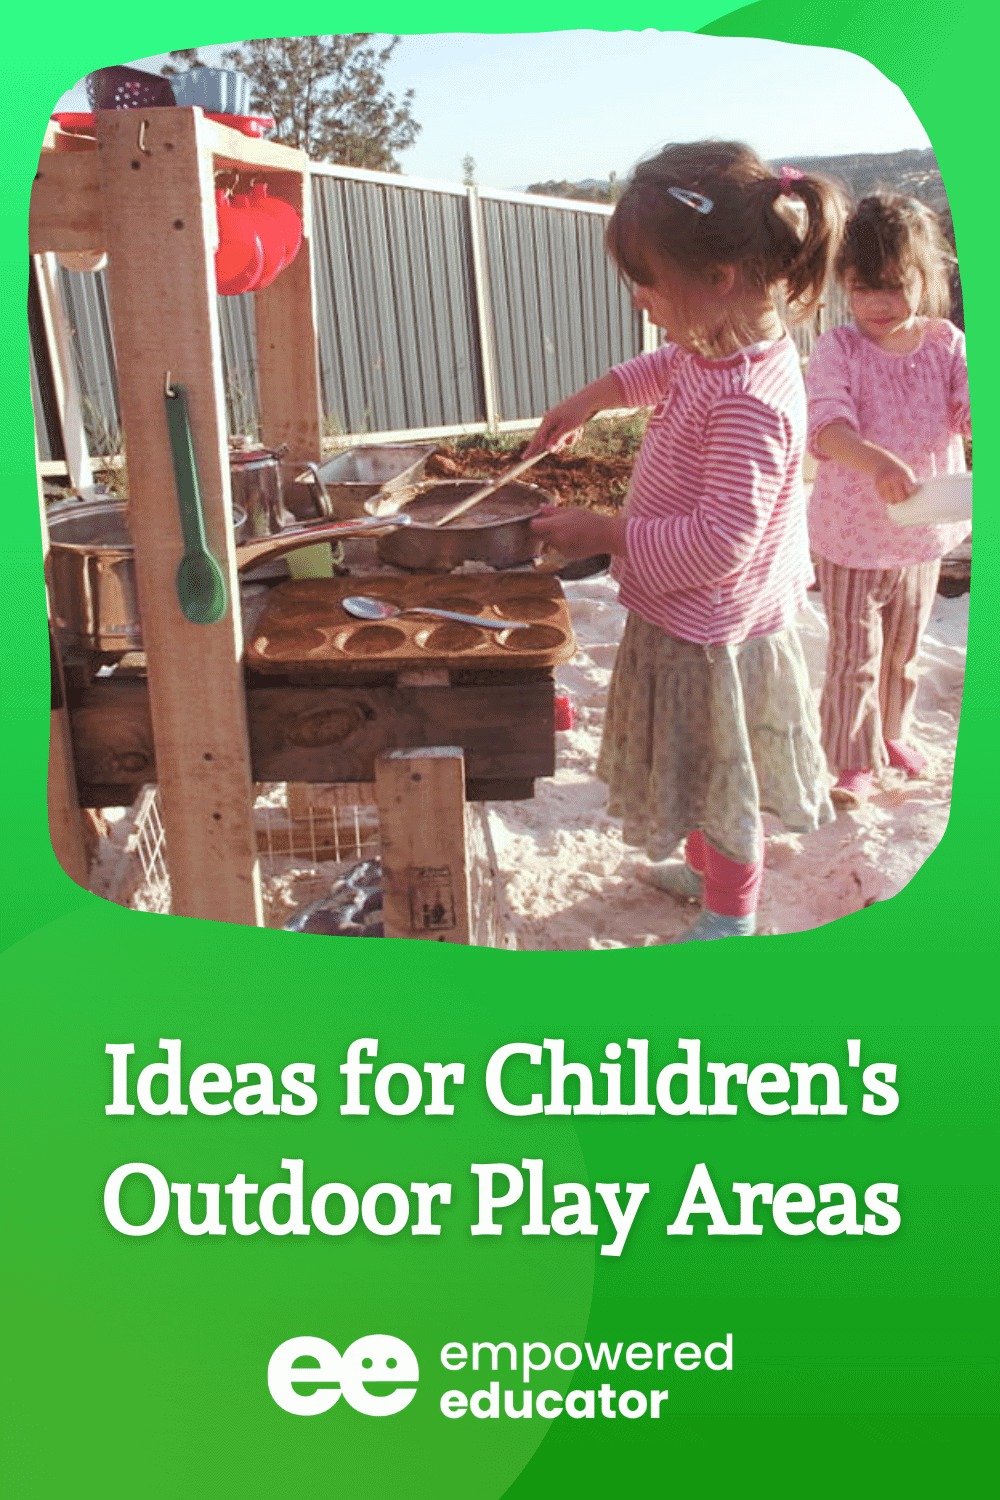 Ideas for Children's Outdoor Play Areas